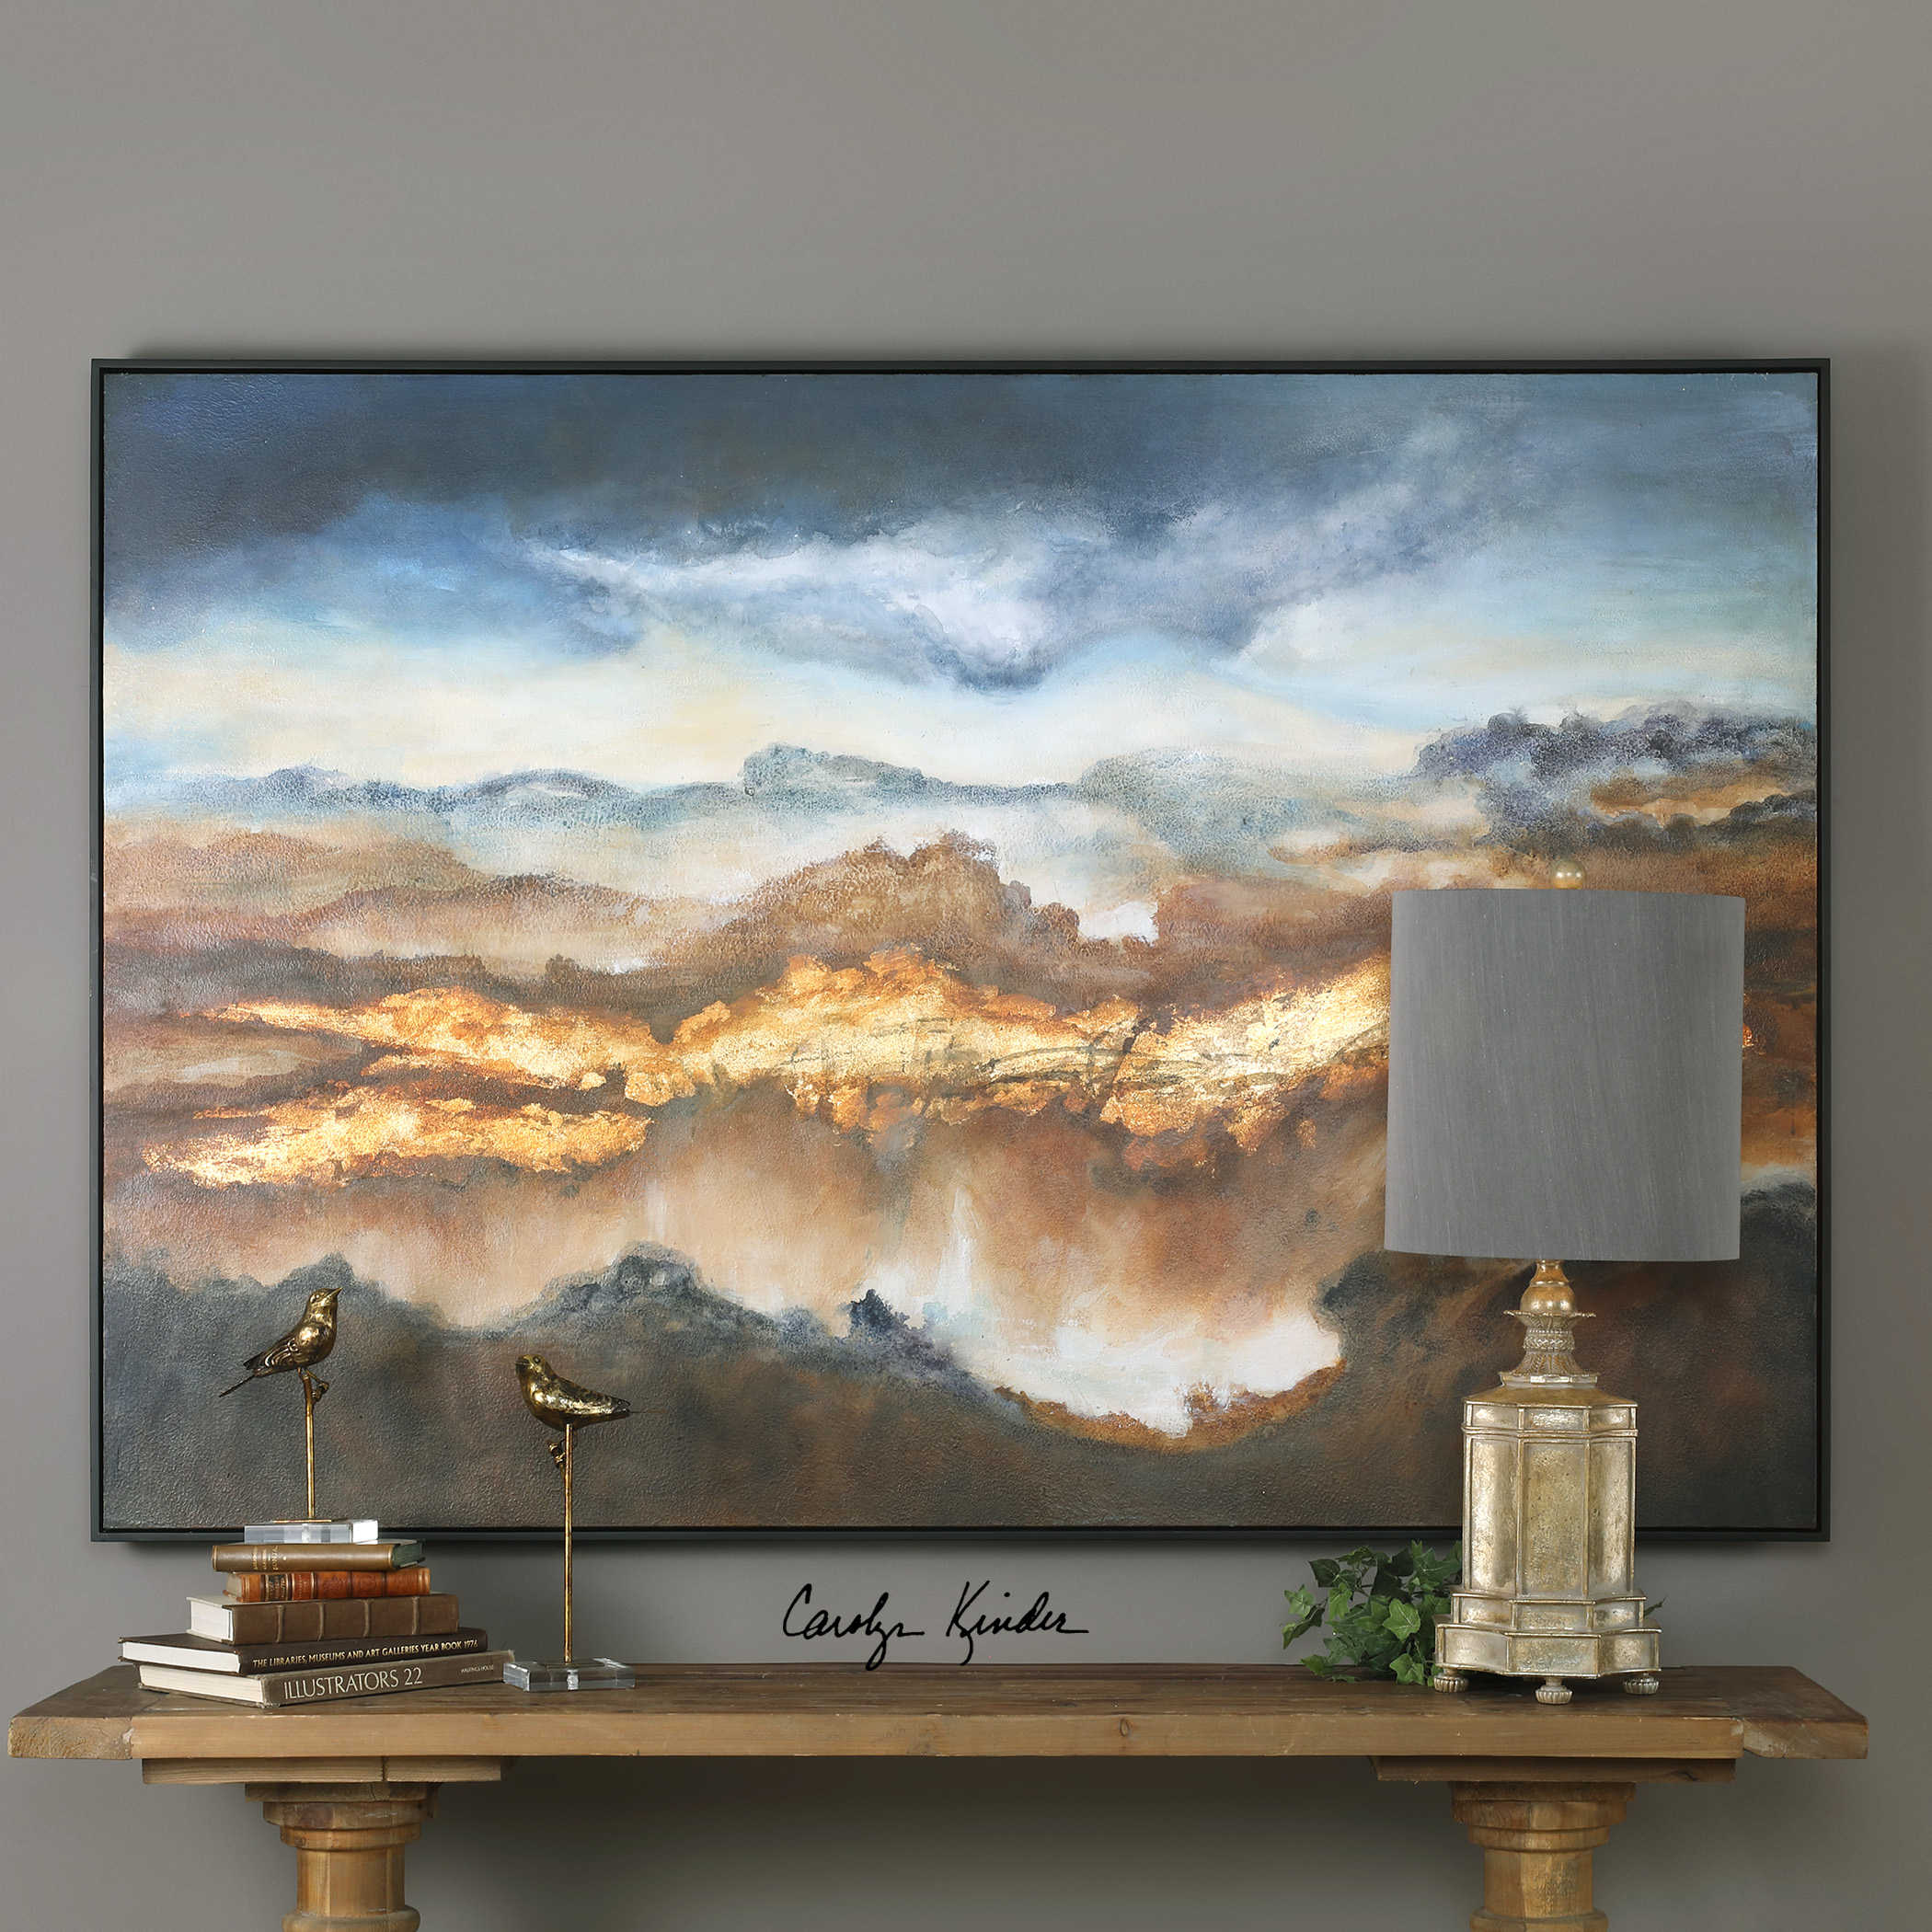 Valley of light wall art carolyn kinder international valley of light wall art mozeypictures Image collections